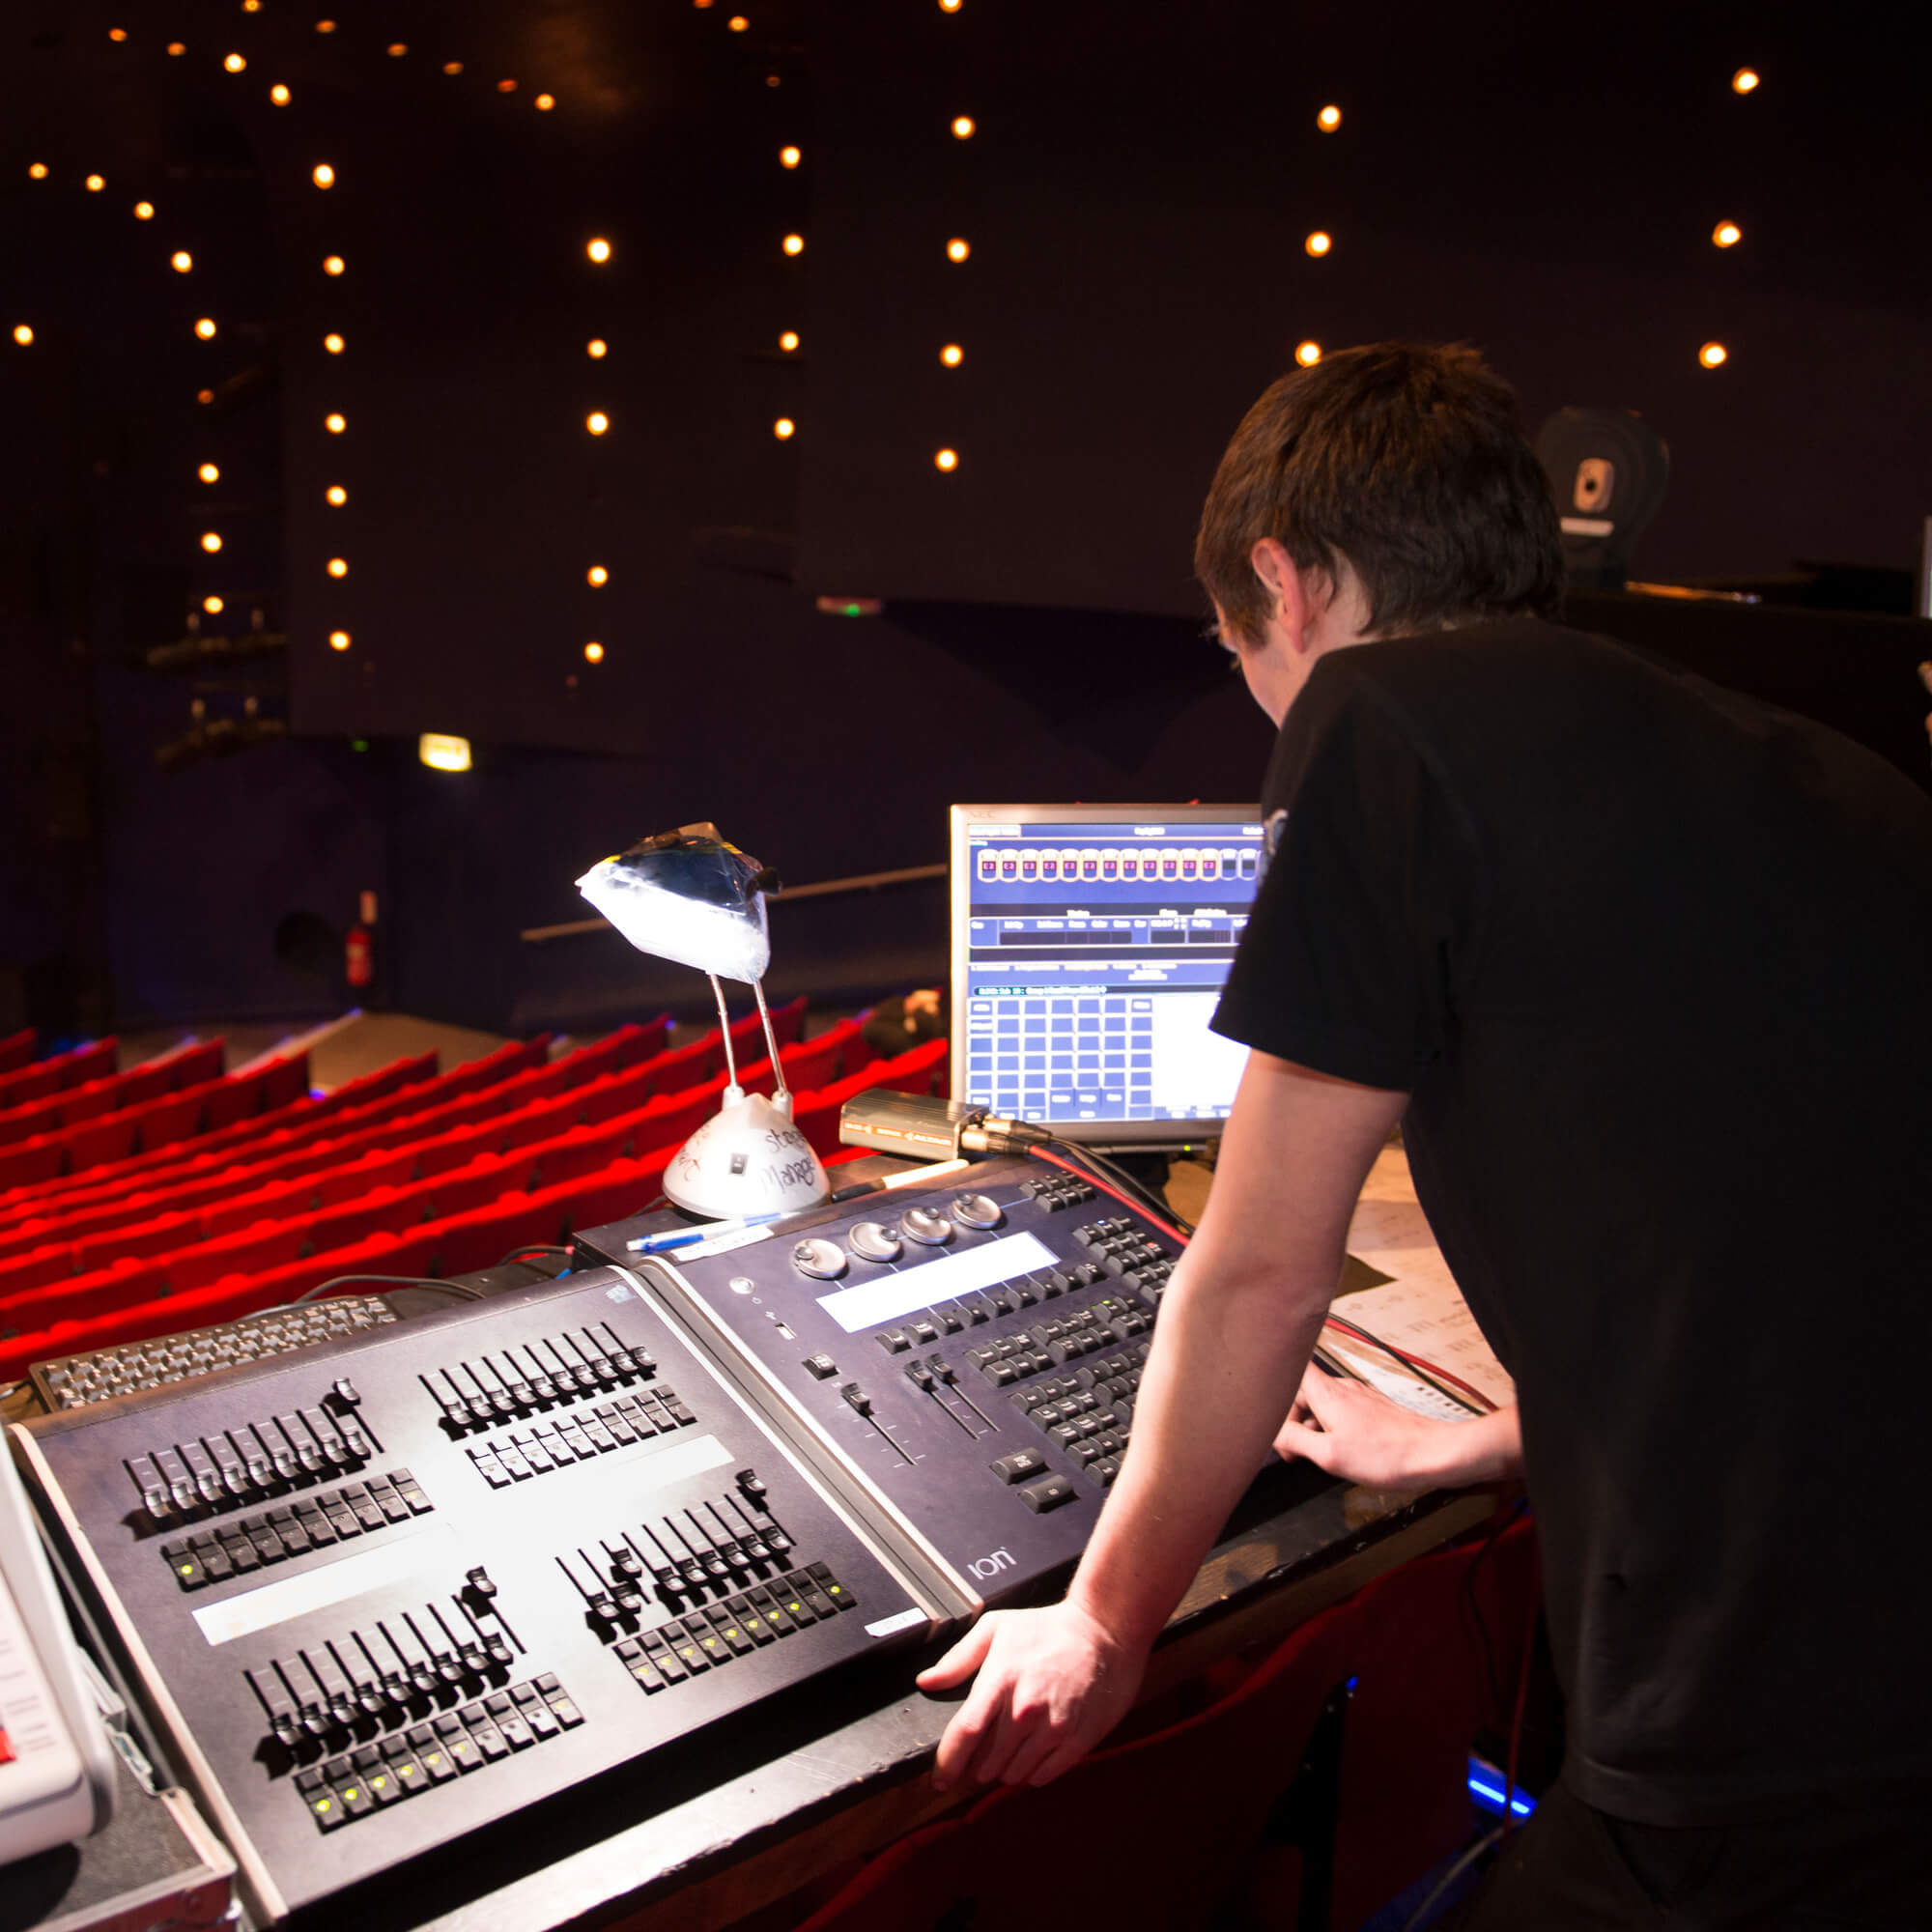 A technical theatre student works on sound equipment in the theatre